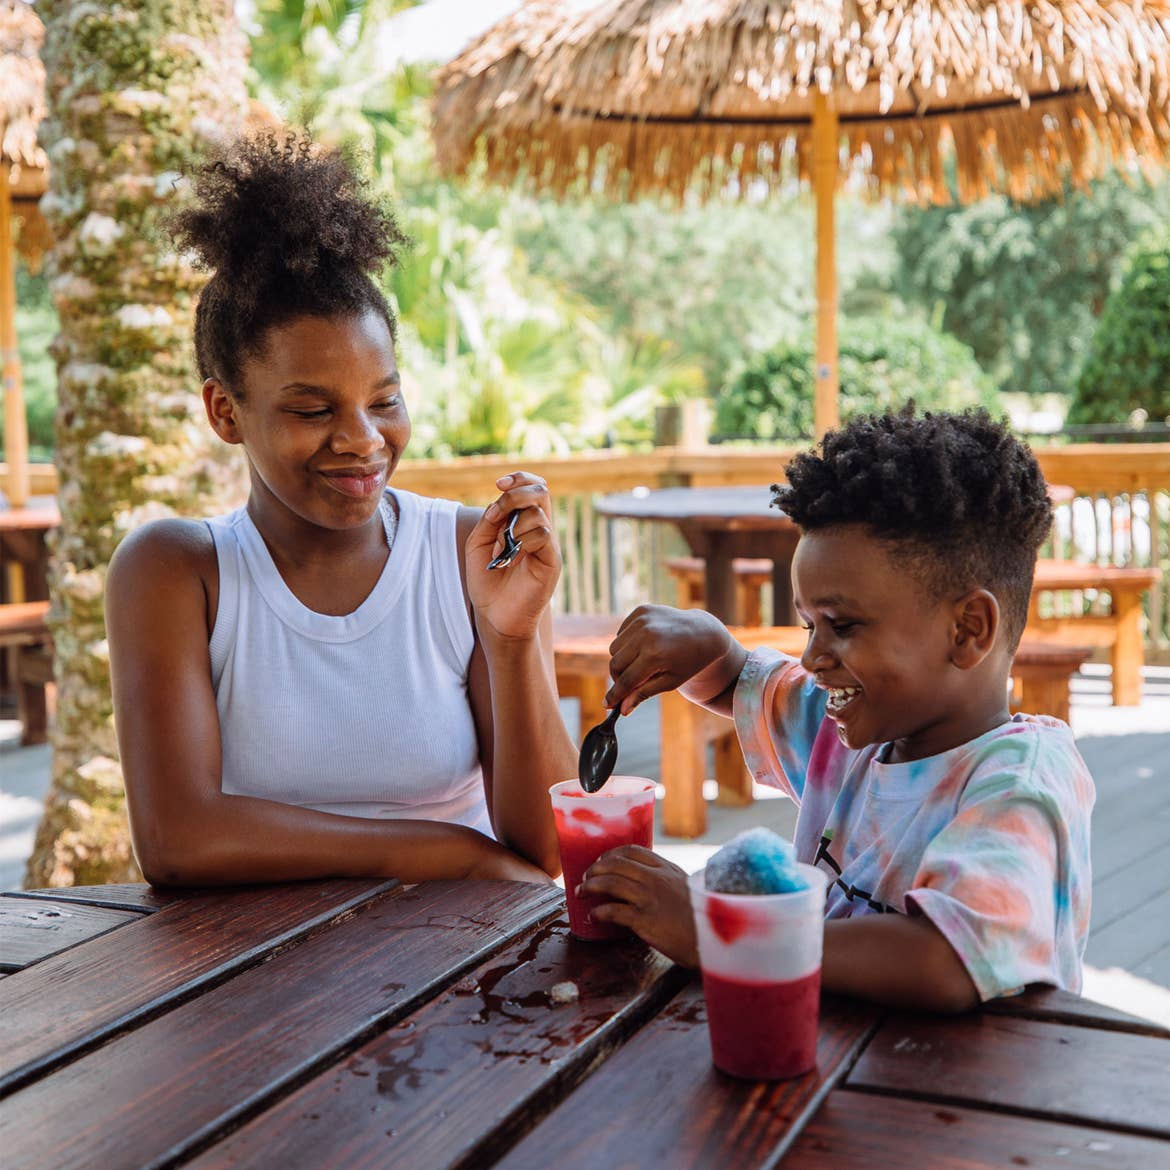 Sabria (left) and Joshua Godfrey (right) enjoy snowcones together on the deck of our Orange Lake Resort located in Orlando, FL.